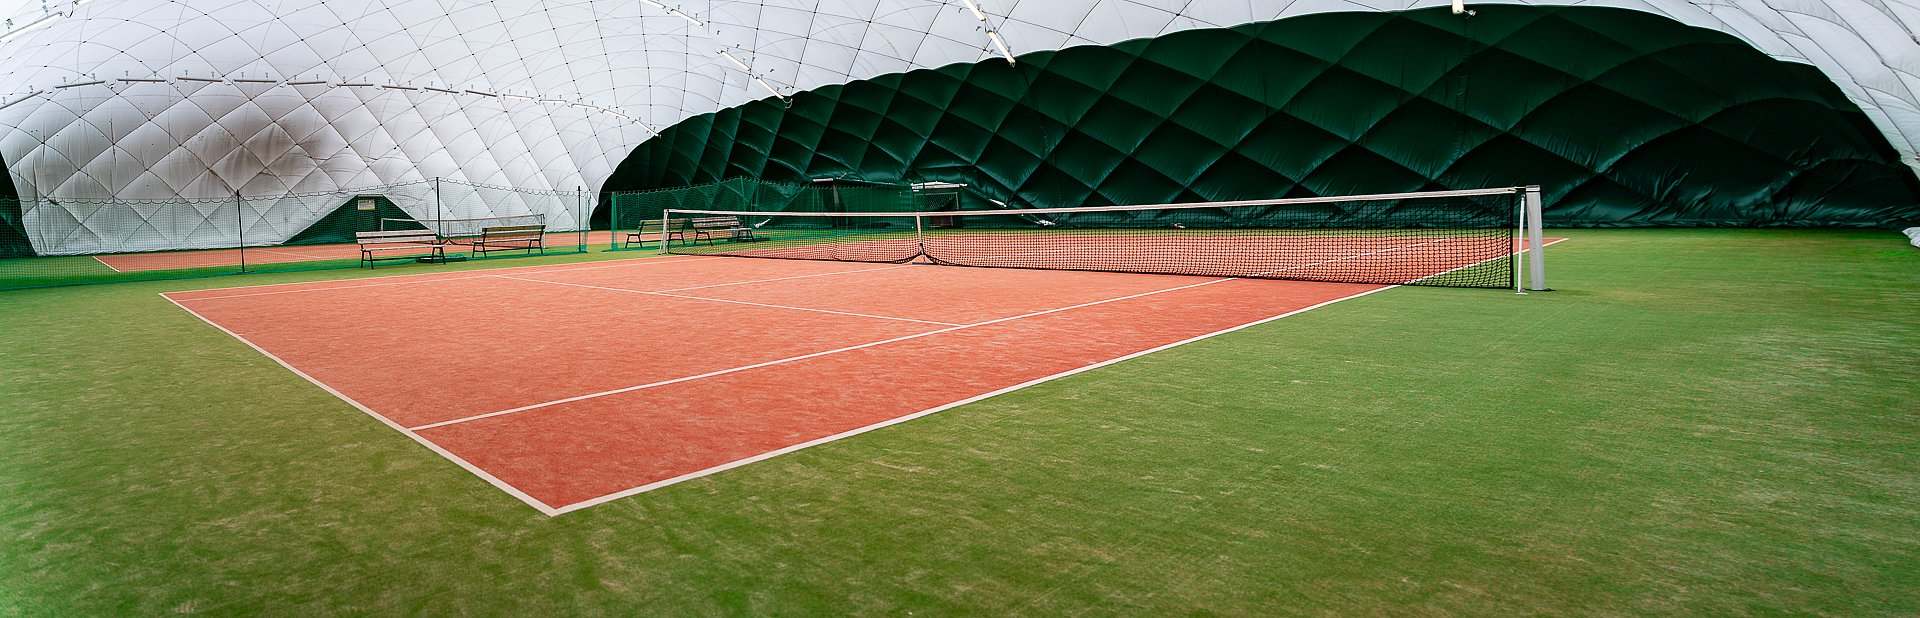 Tennis court - inflatable hall